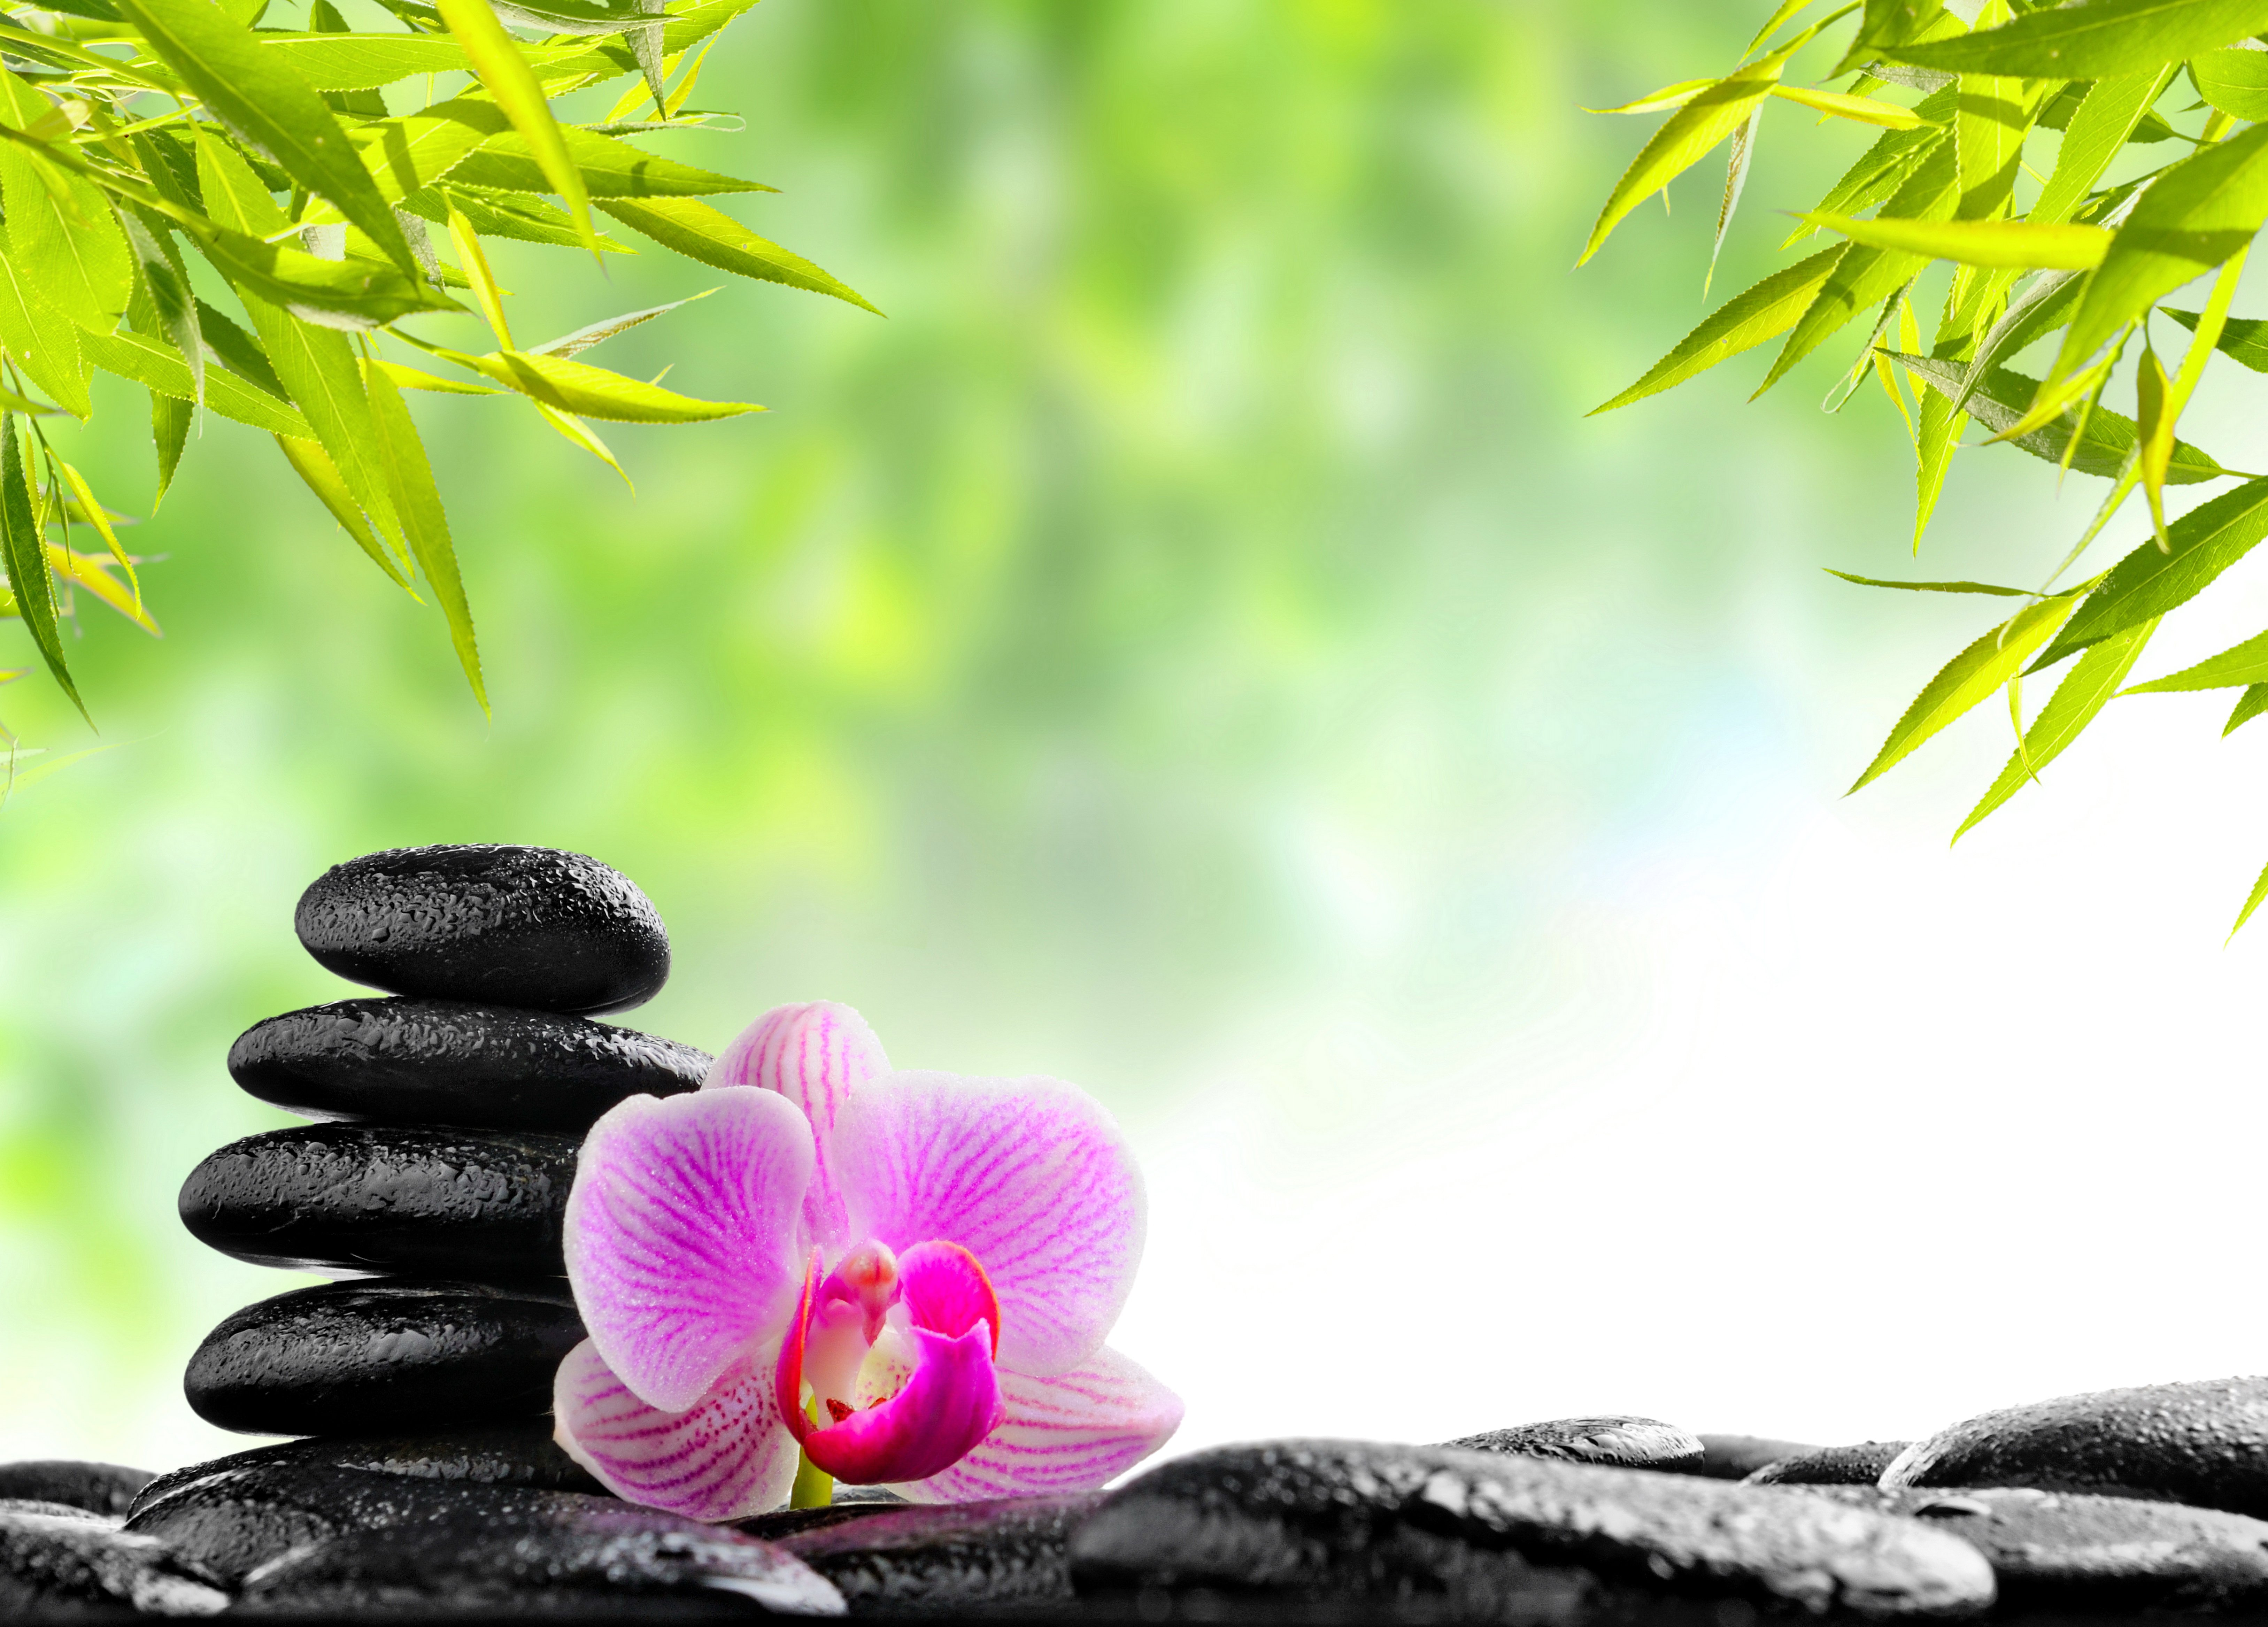 Zen mood bokeh garden buddhism religion wallpaper for Decoration zen et nature